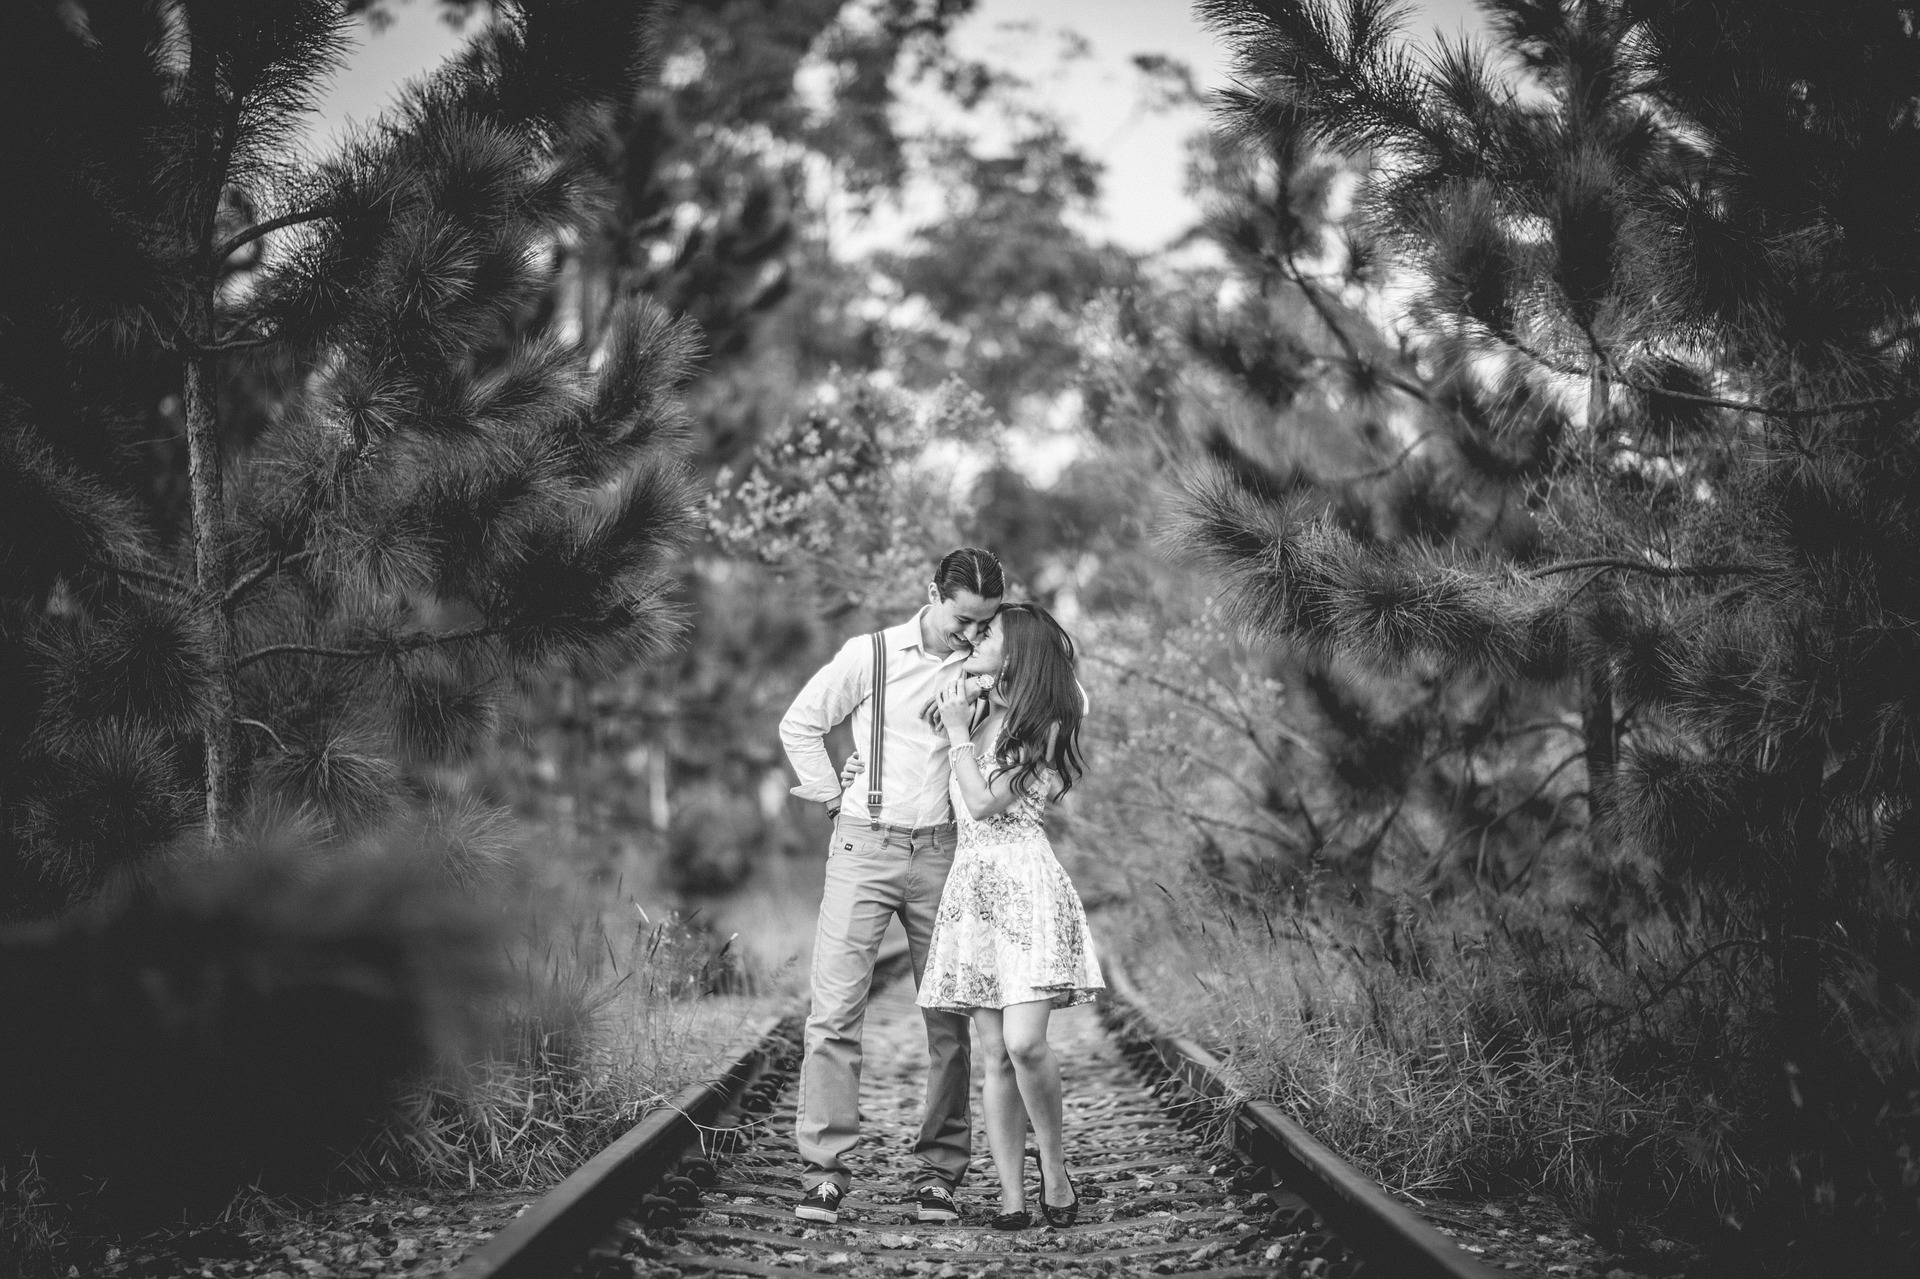 Couple in love on train tracks